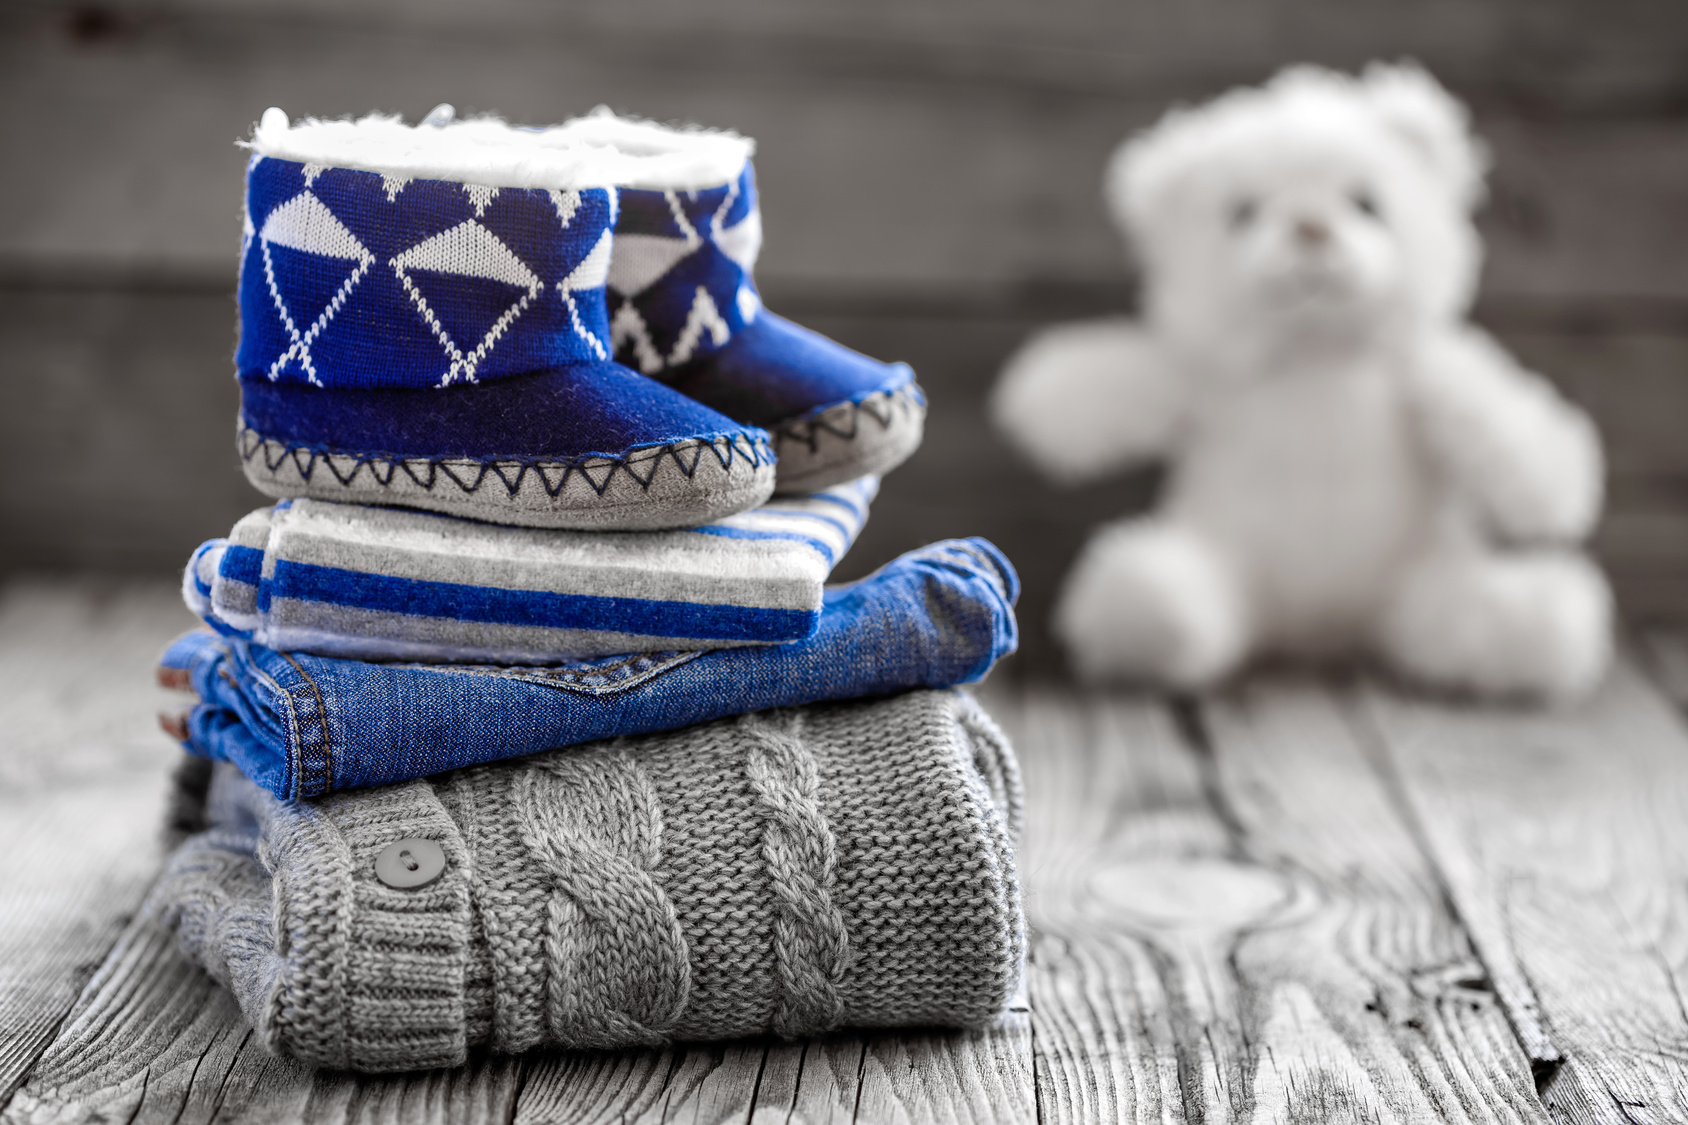 winter baby clothes in grey and blue colors piled up